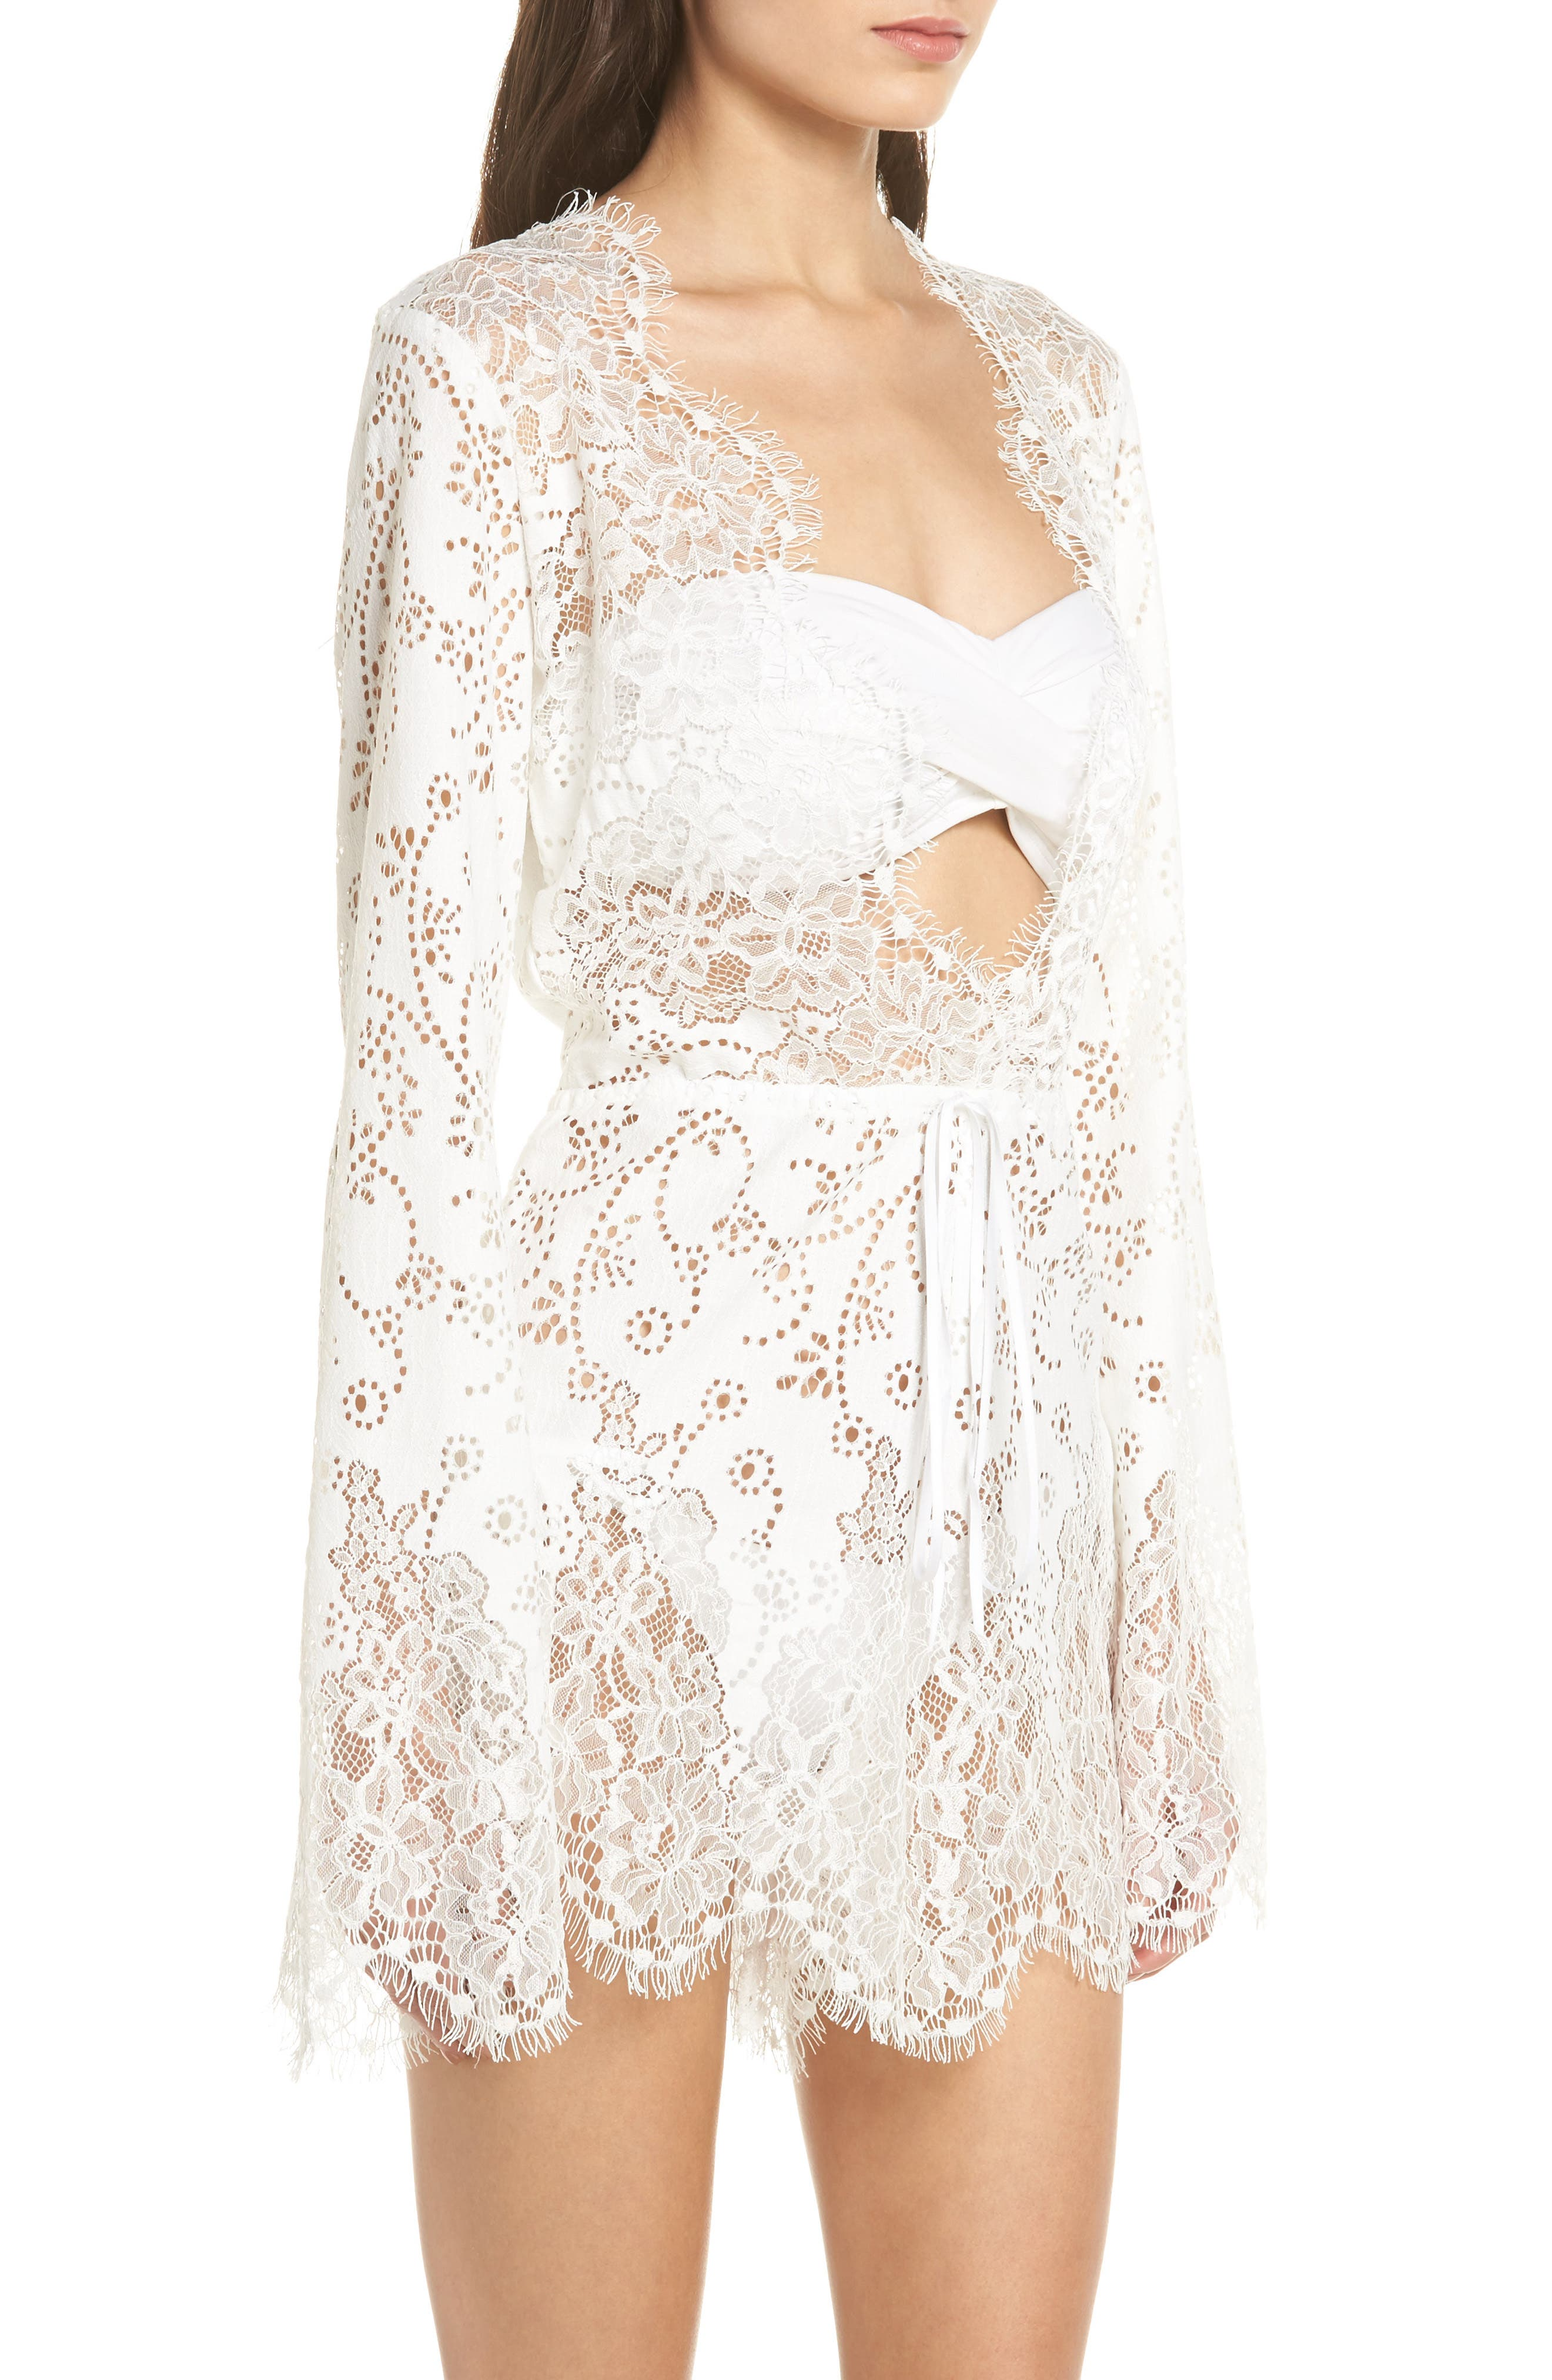 Olympia Lace Cover-Up Romper,                             Alternate thumbnail 6, color,